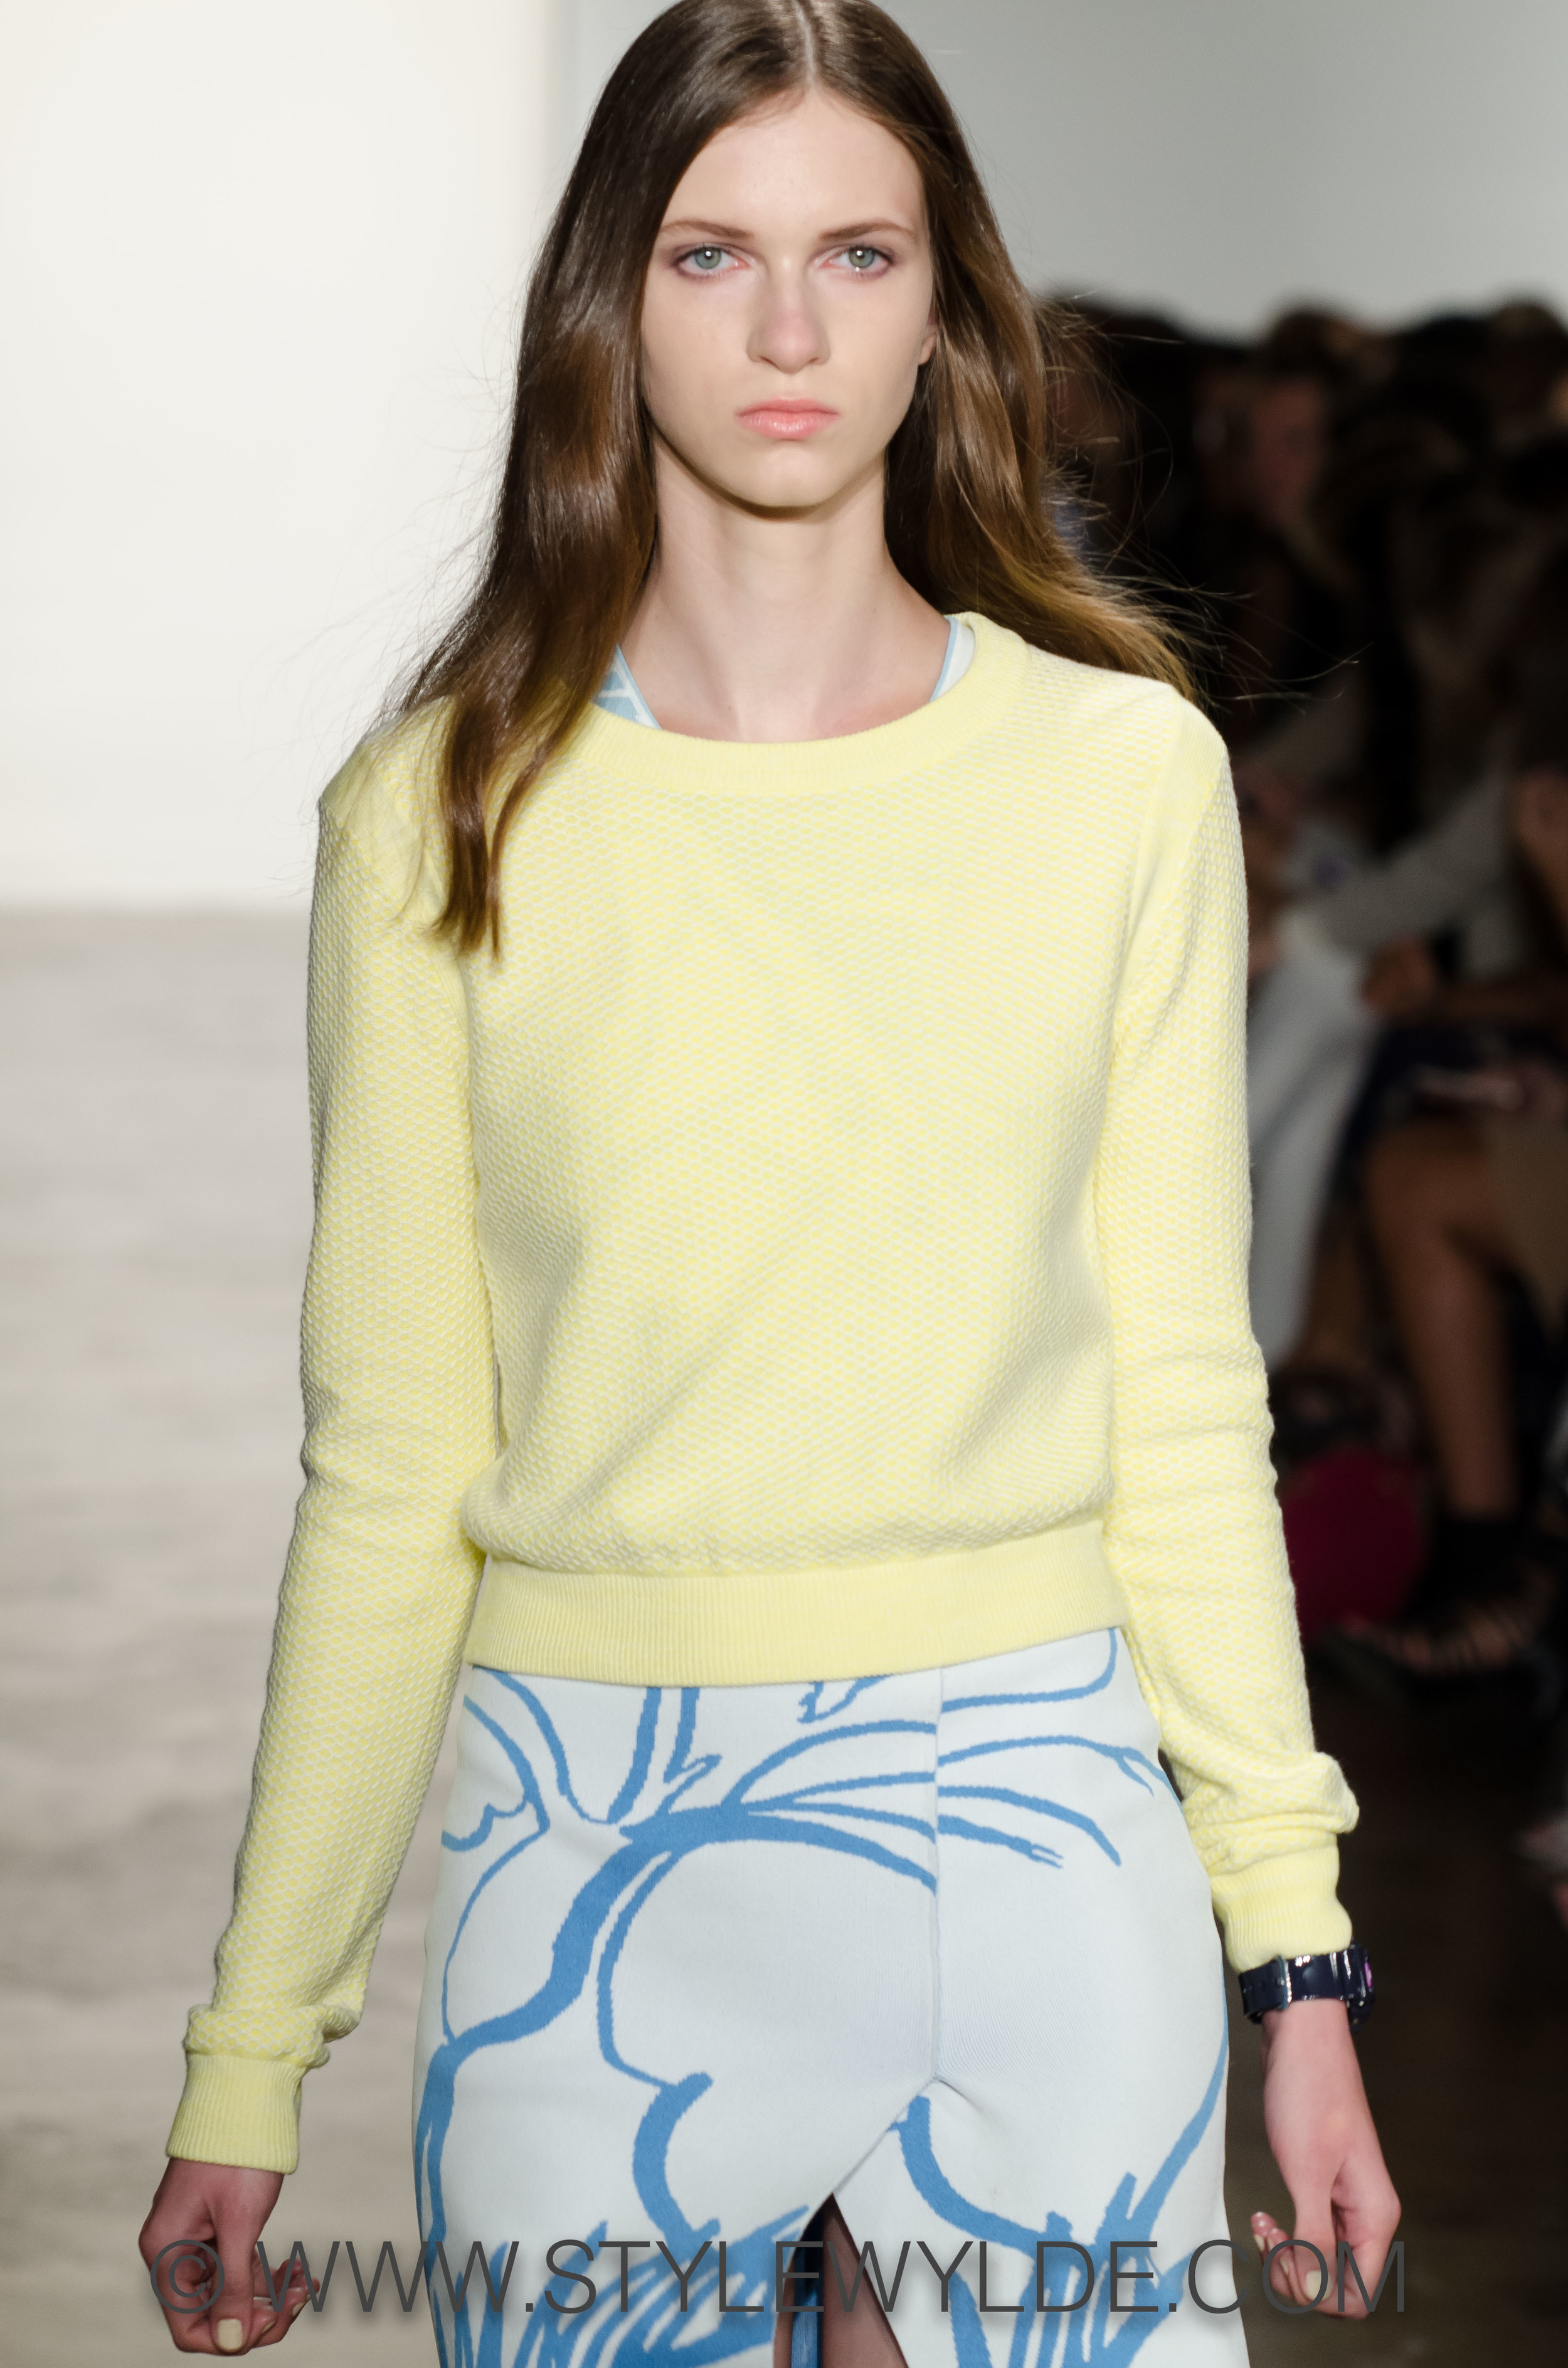 StyleWylde_Timo_SS15_FOH (27 of 38).jpg